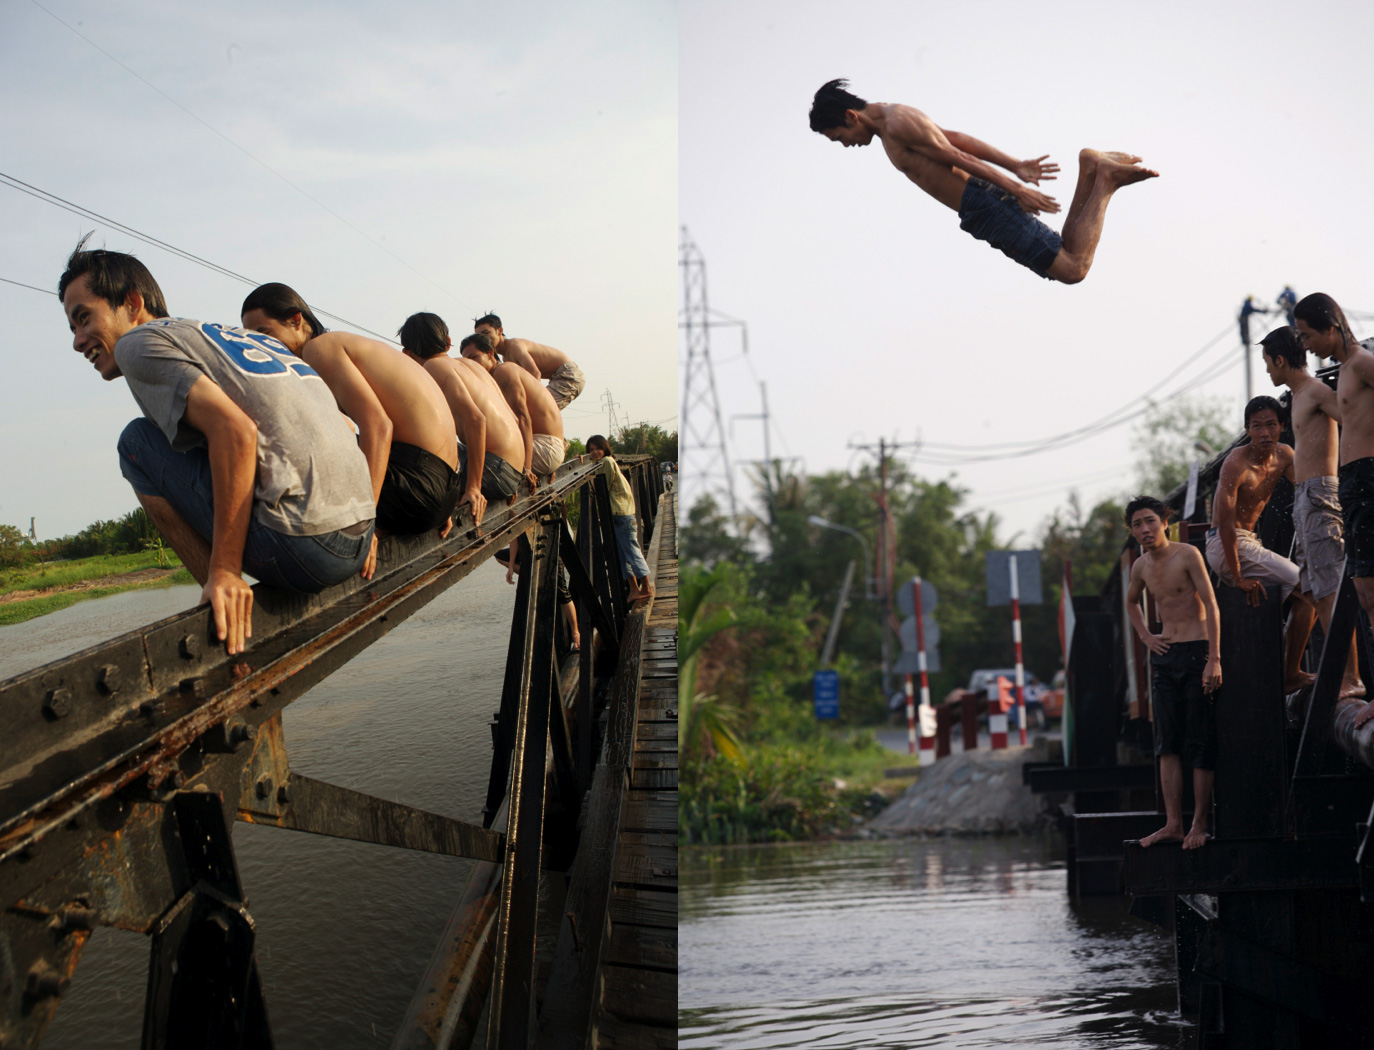 Afternoon Swim in Saigon River/Steve Mason Photography